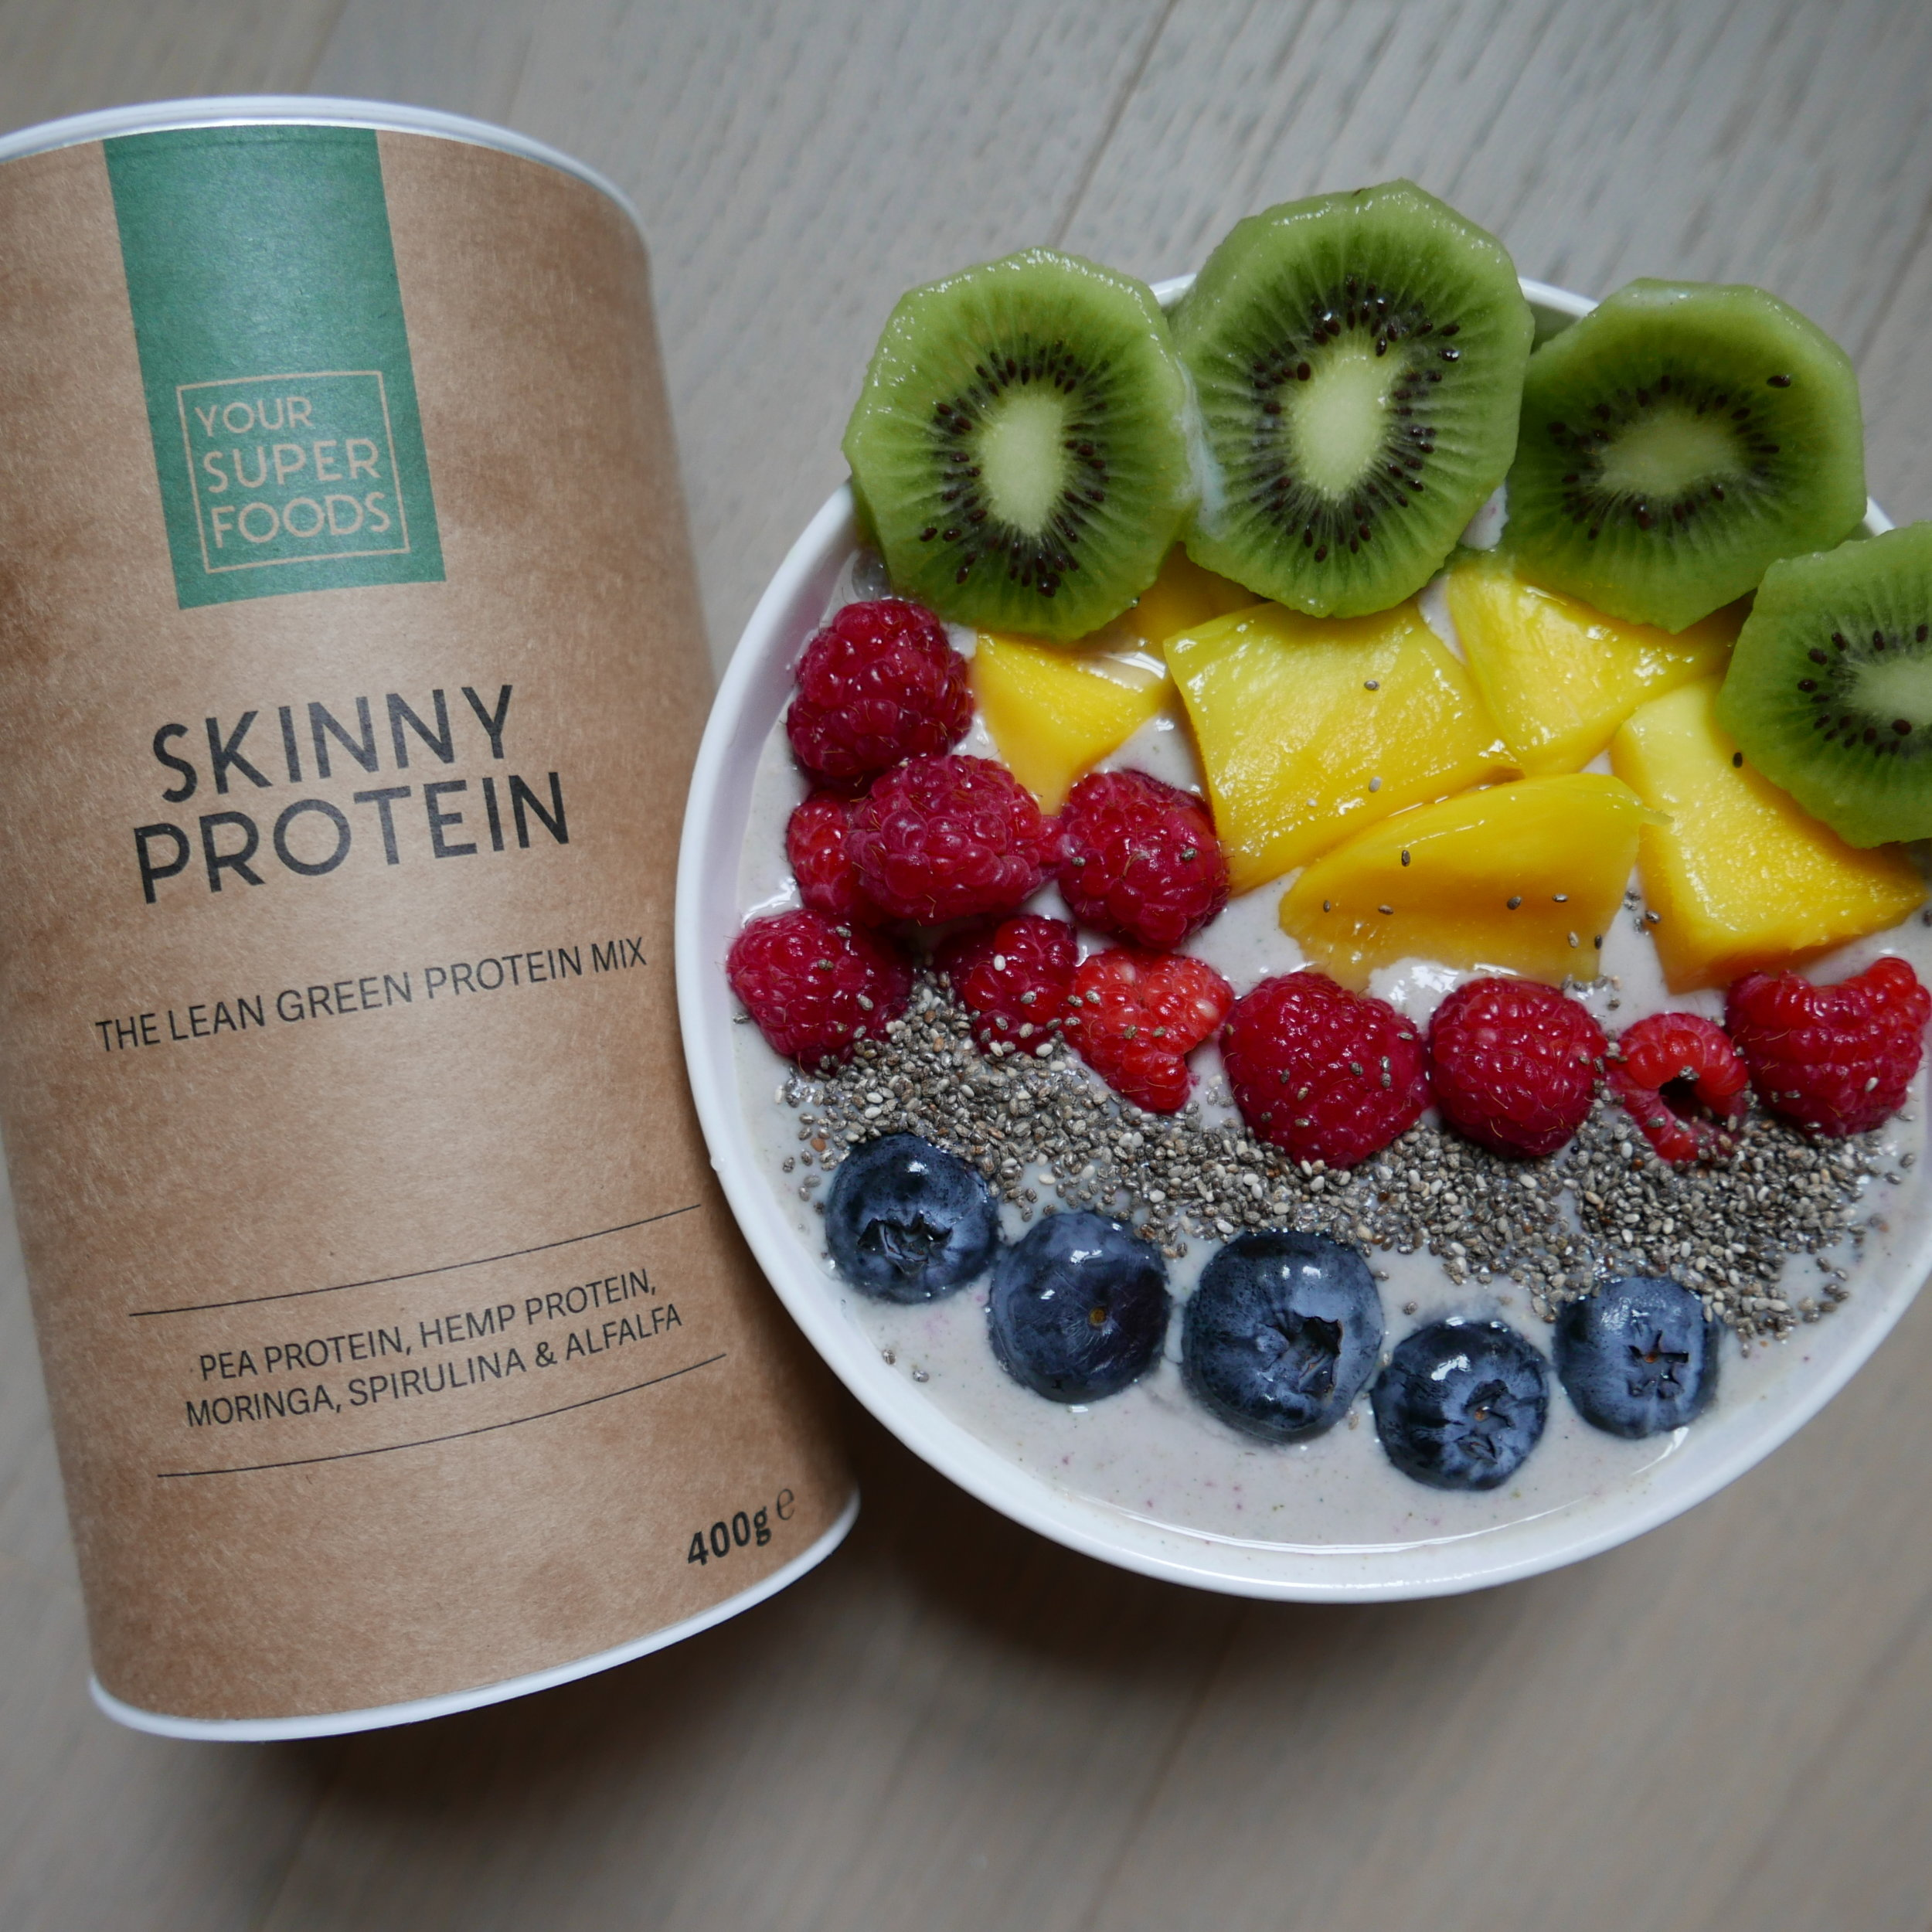 Skinny Protein - 62% lean and green plant-based protein. made with organic moringa, spirulina, alfalfa grass and protein from plants — including pea and hemp. I put this inside a morning smoothie bowl!